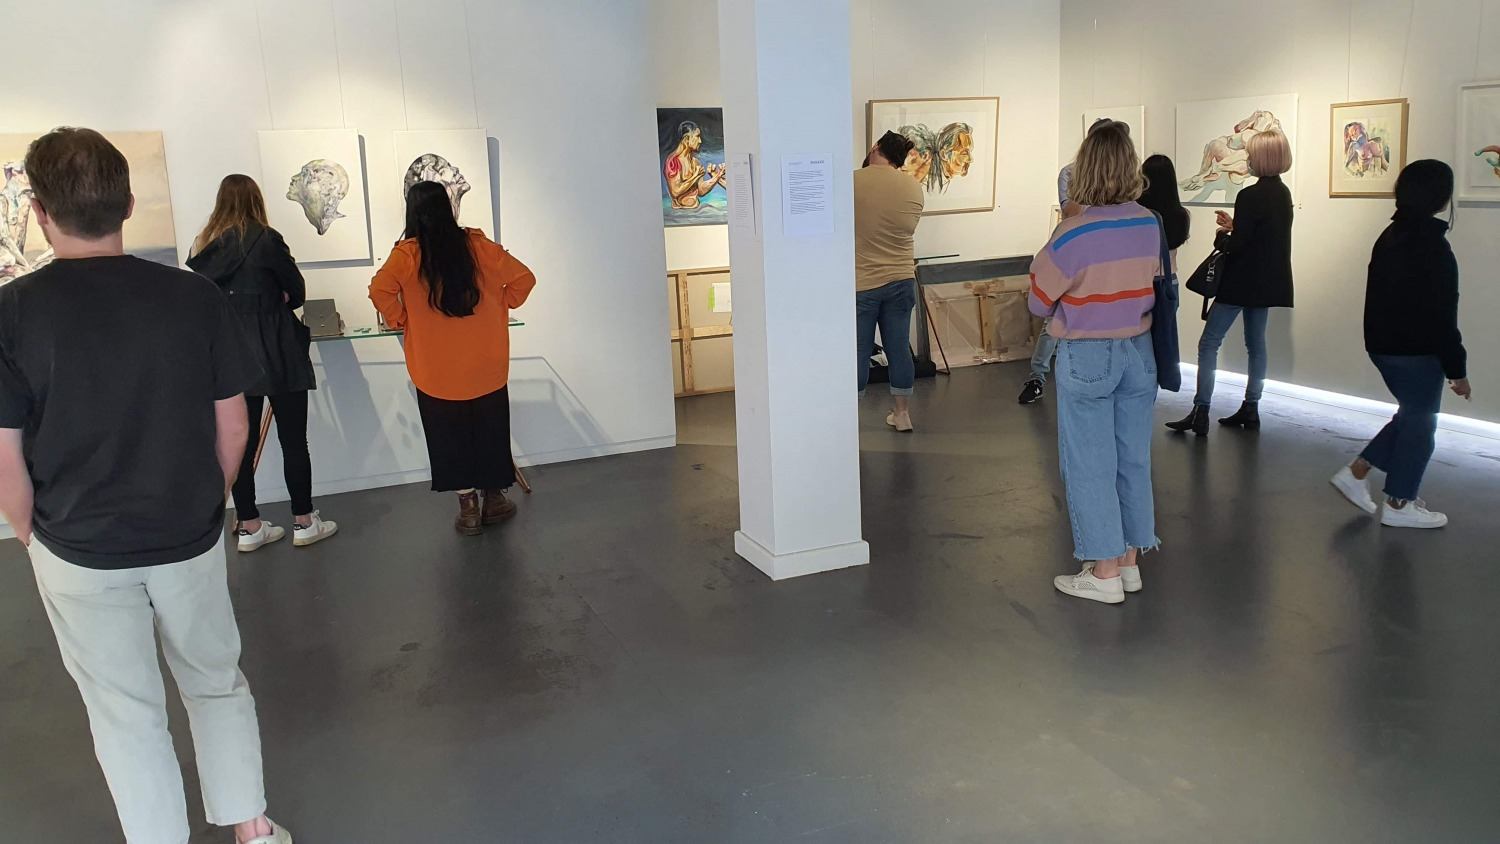 Peach Black Chippendale Gallery Sydney Art Out Walk September 2020 Art Out Live (1)